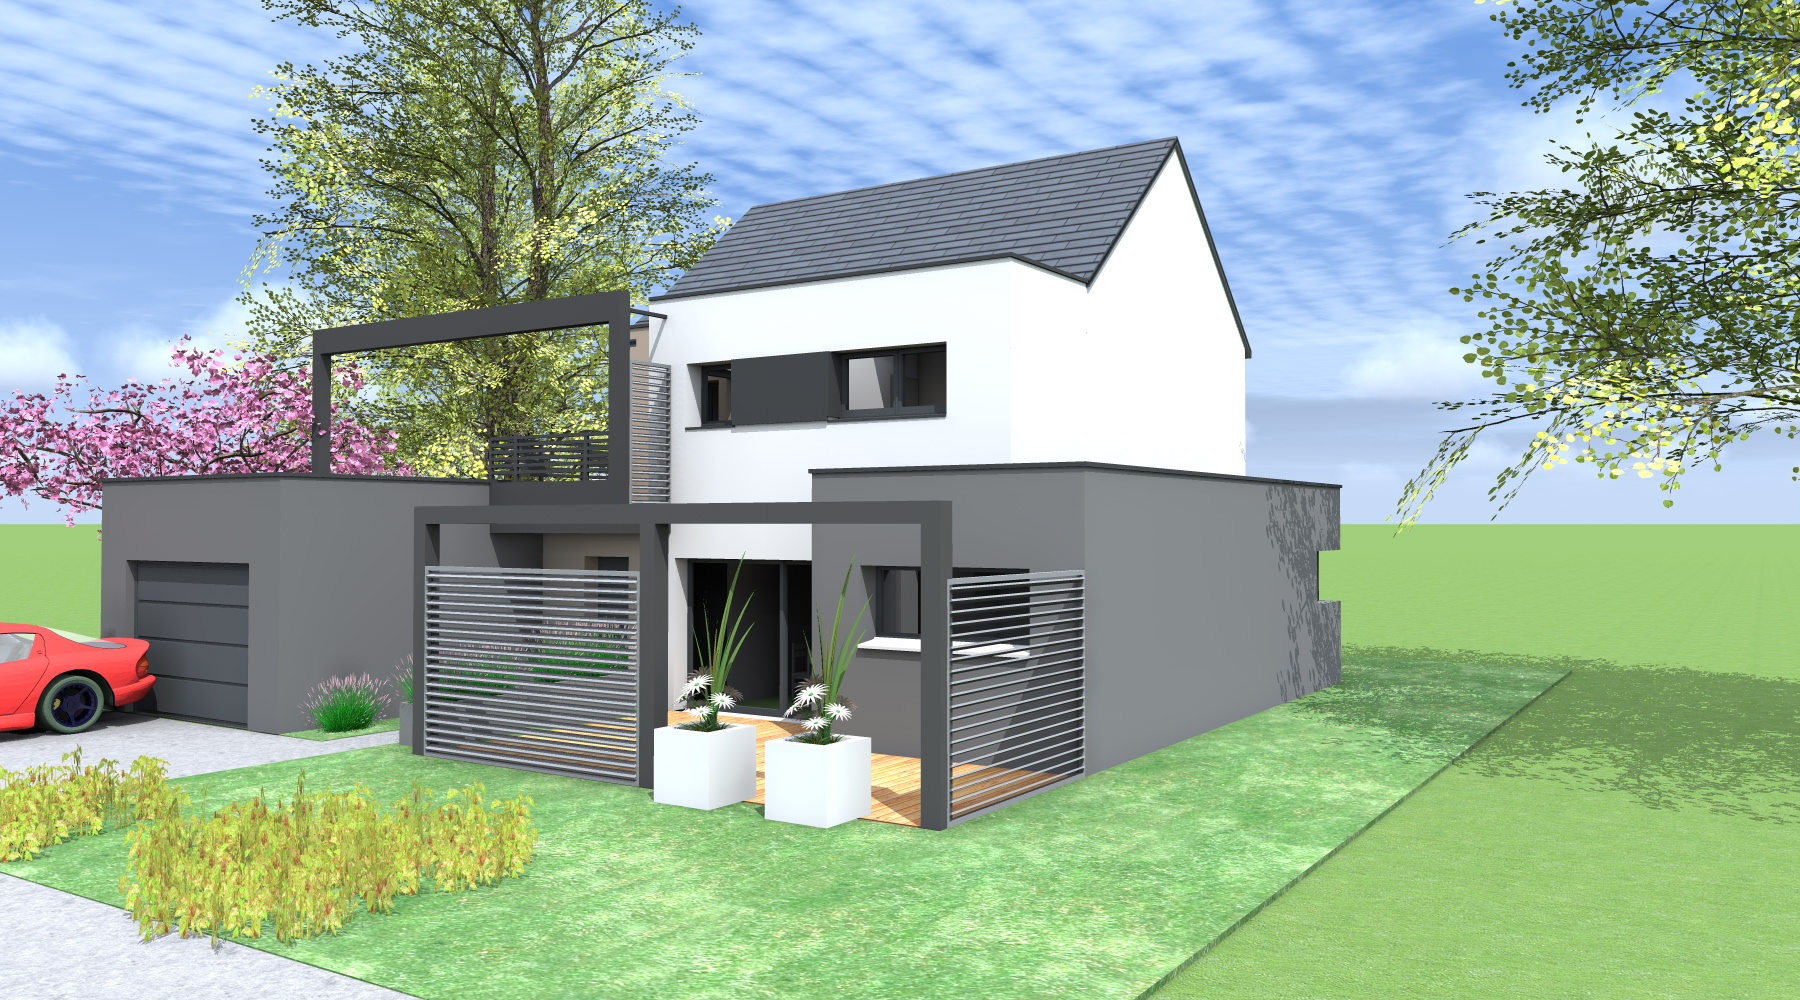 Maison d 39 architecte contemporaine st gr goire 35 for Projet construction maison neuve